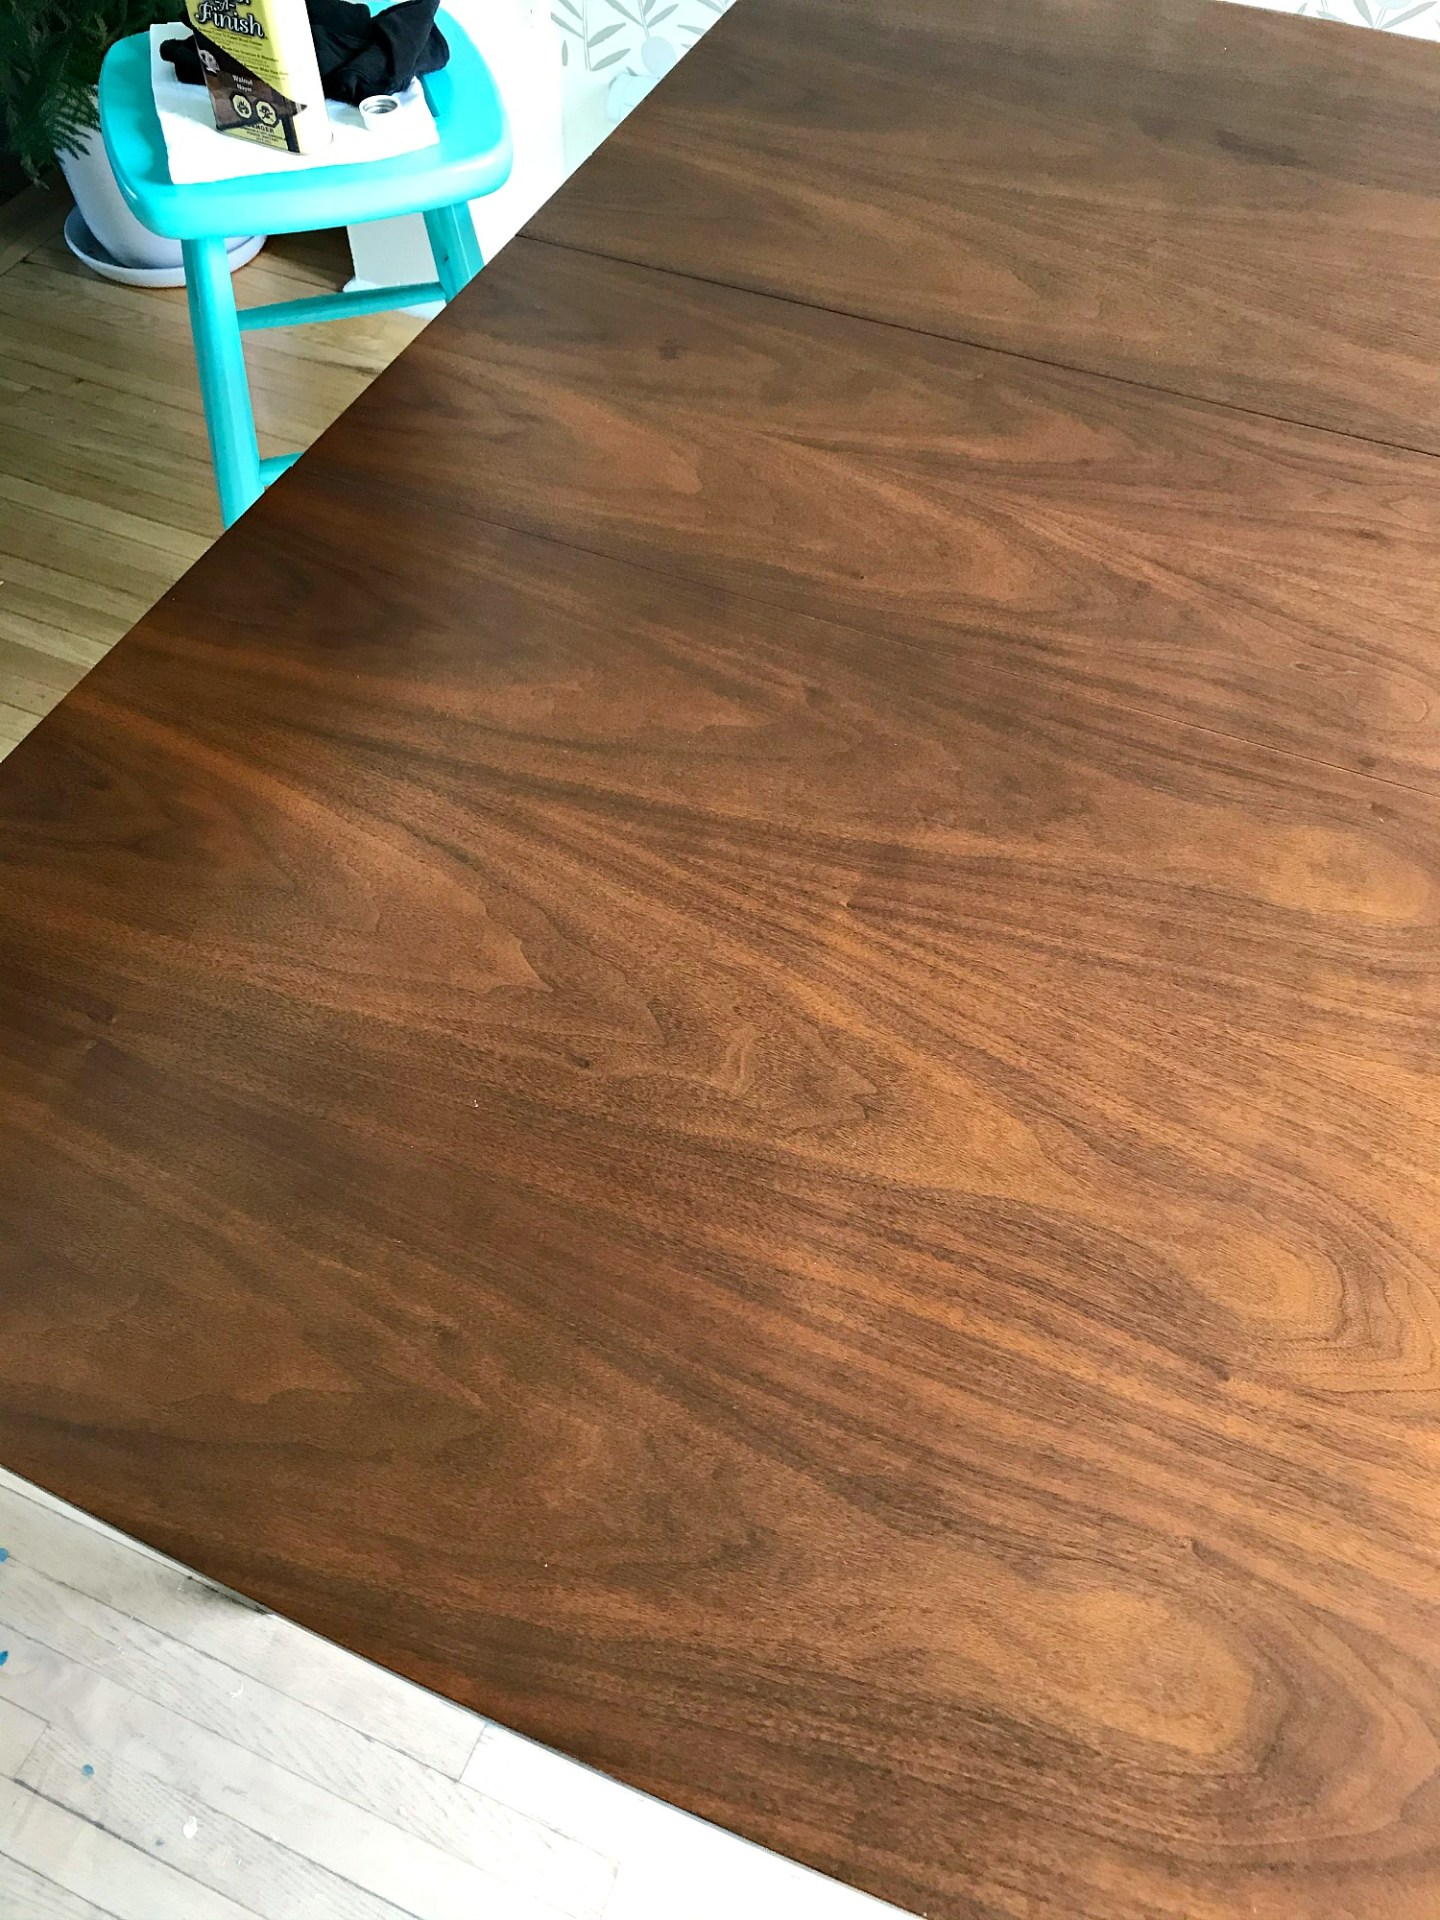 Restore wood furniture without stripping or sanding